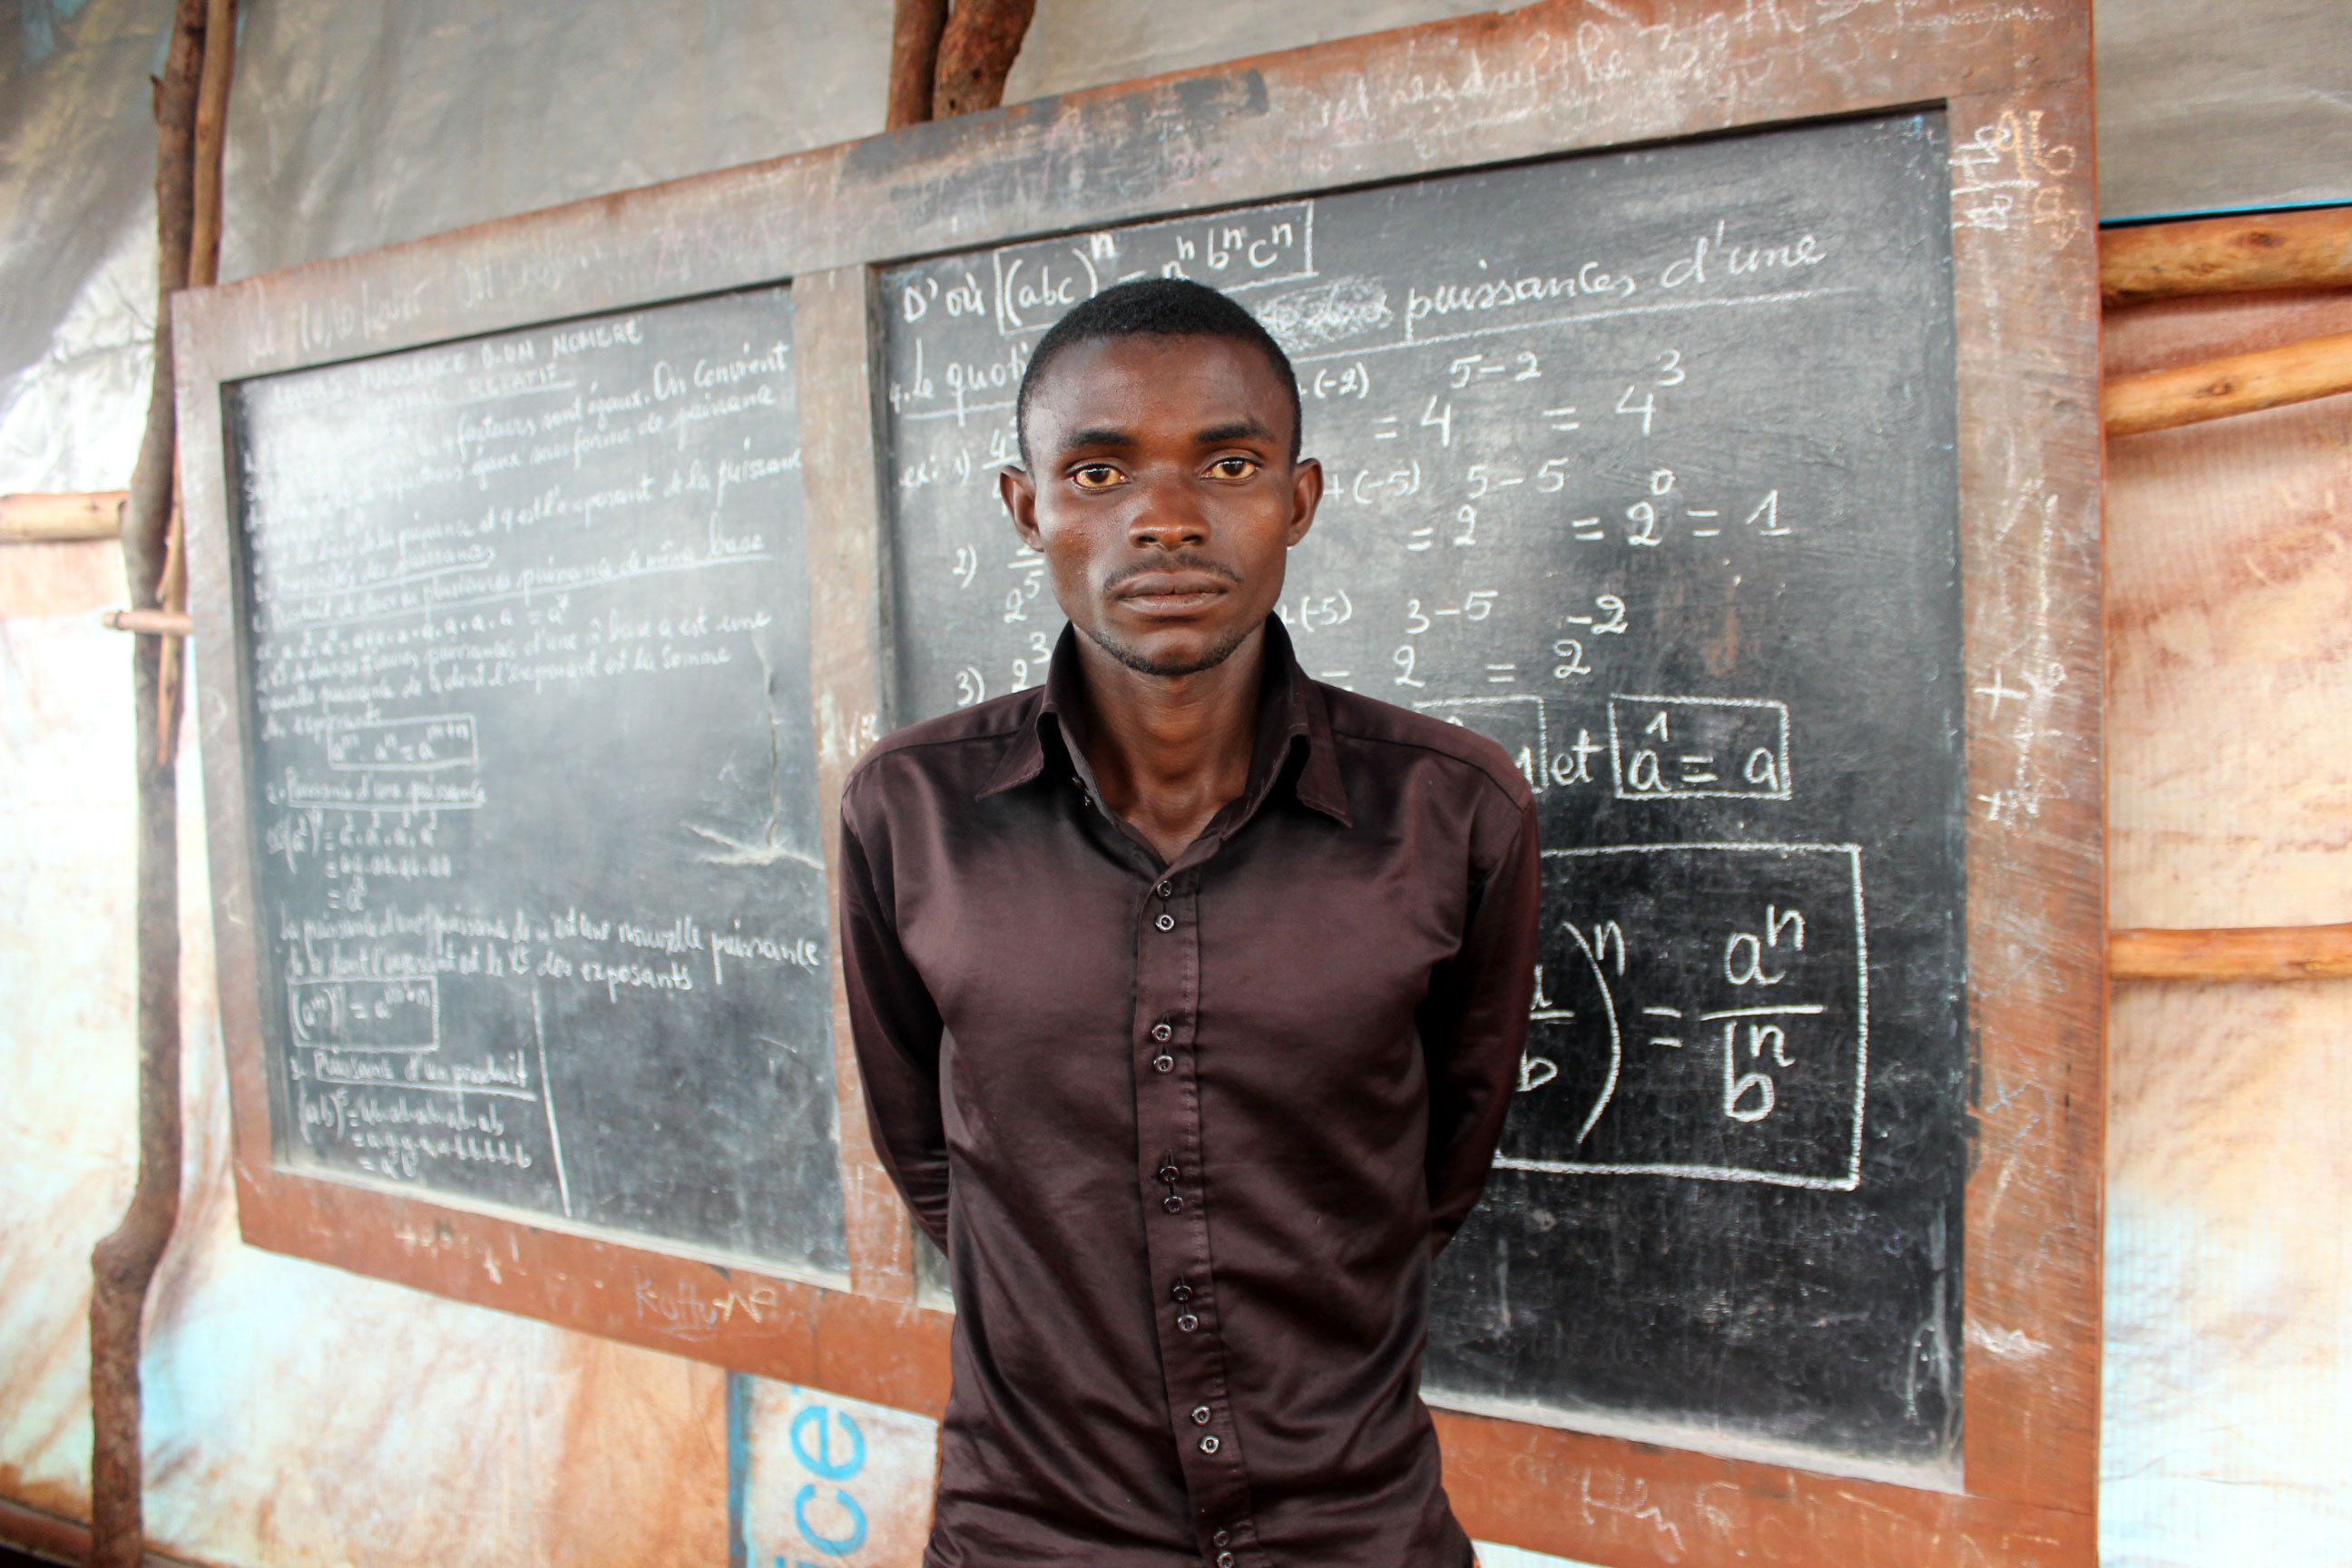 John Posco, 27, was a second-year university student when he was forced to flee from Burundi. He now teaches English and art to high school students in Nyarugusu camp in Tanzania. He hopes an international effort will help resolve the crisis in Burundi. [Tendai Marima/Al Jazeera]